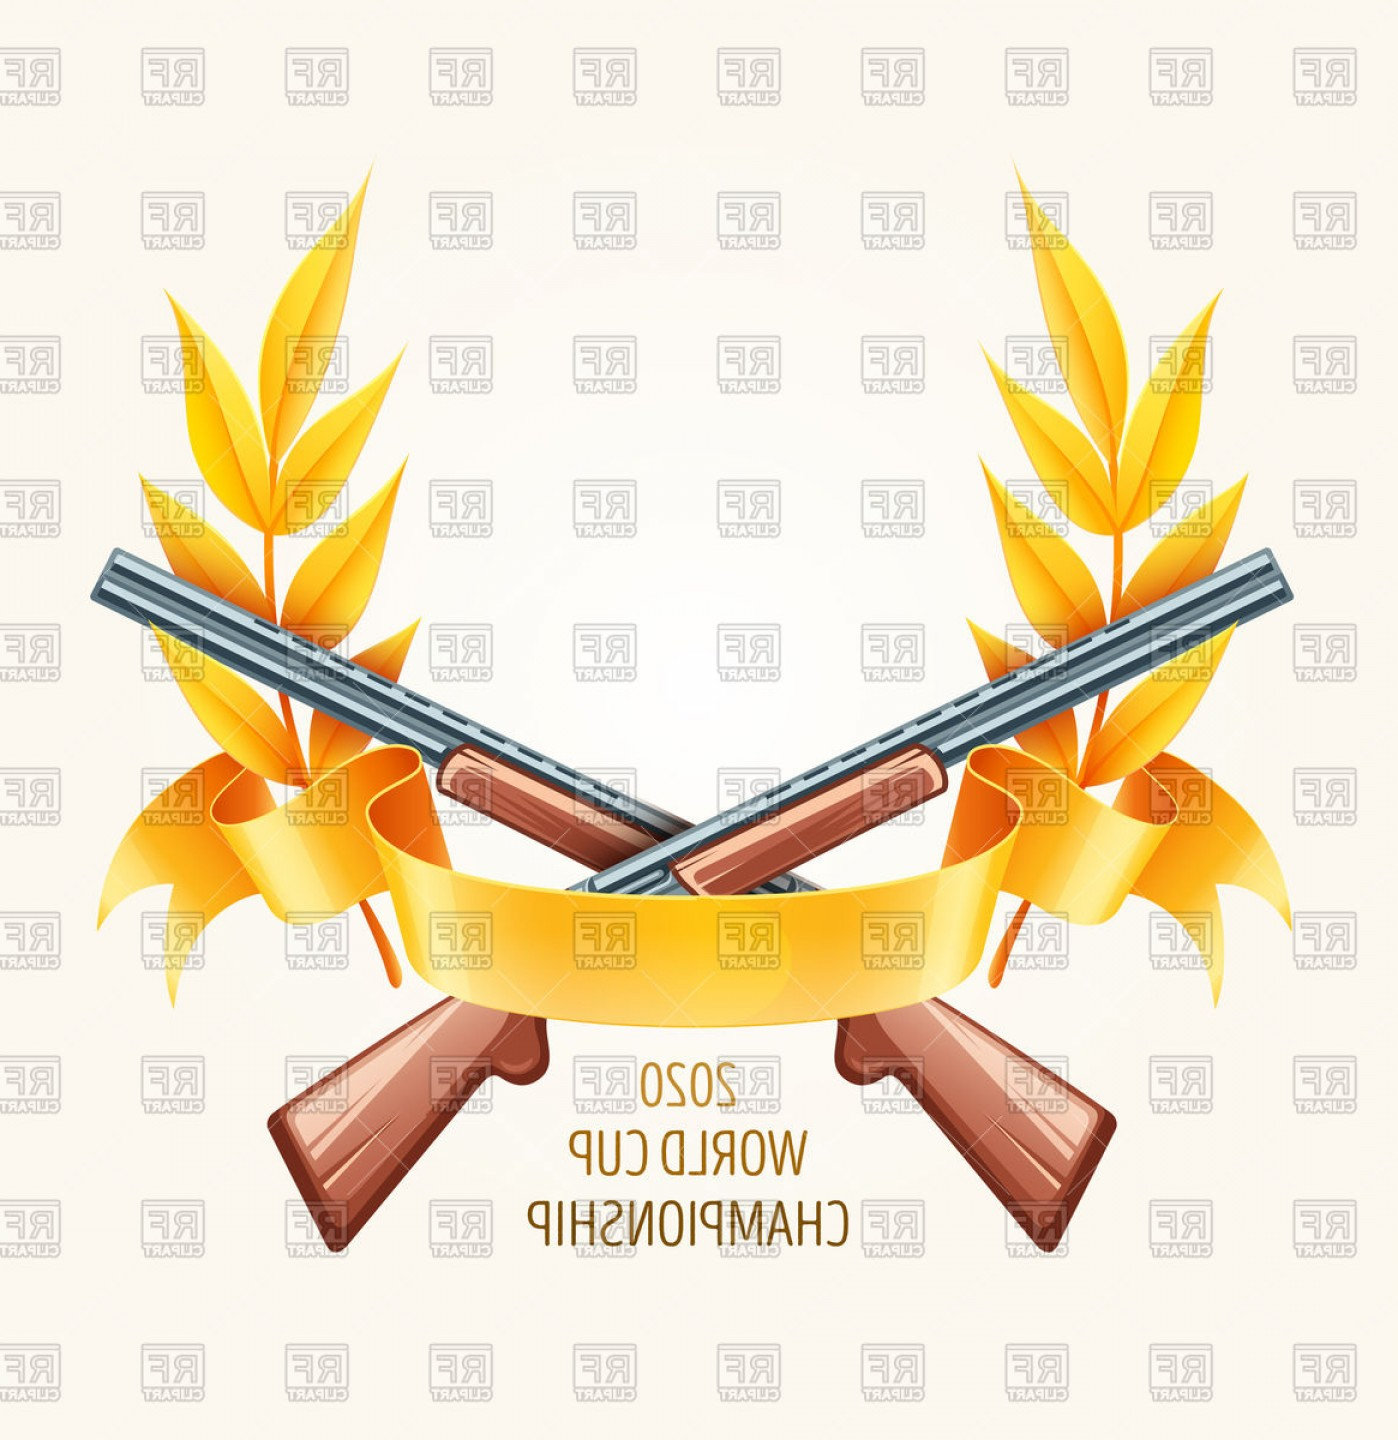 Hunting Rifle Vector Cross: Hunting Or Shooting Emblem Cross Rifles With Laurel Branches Vector Clipart